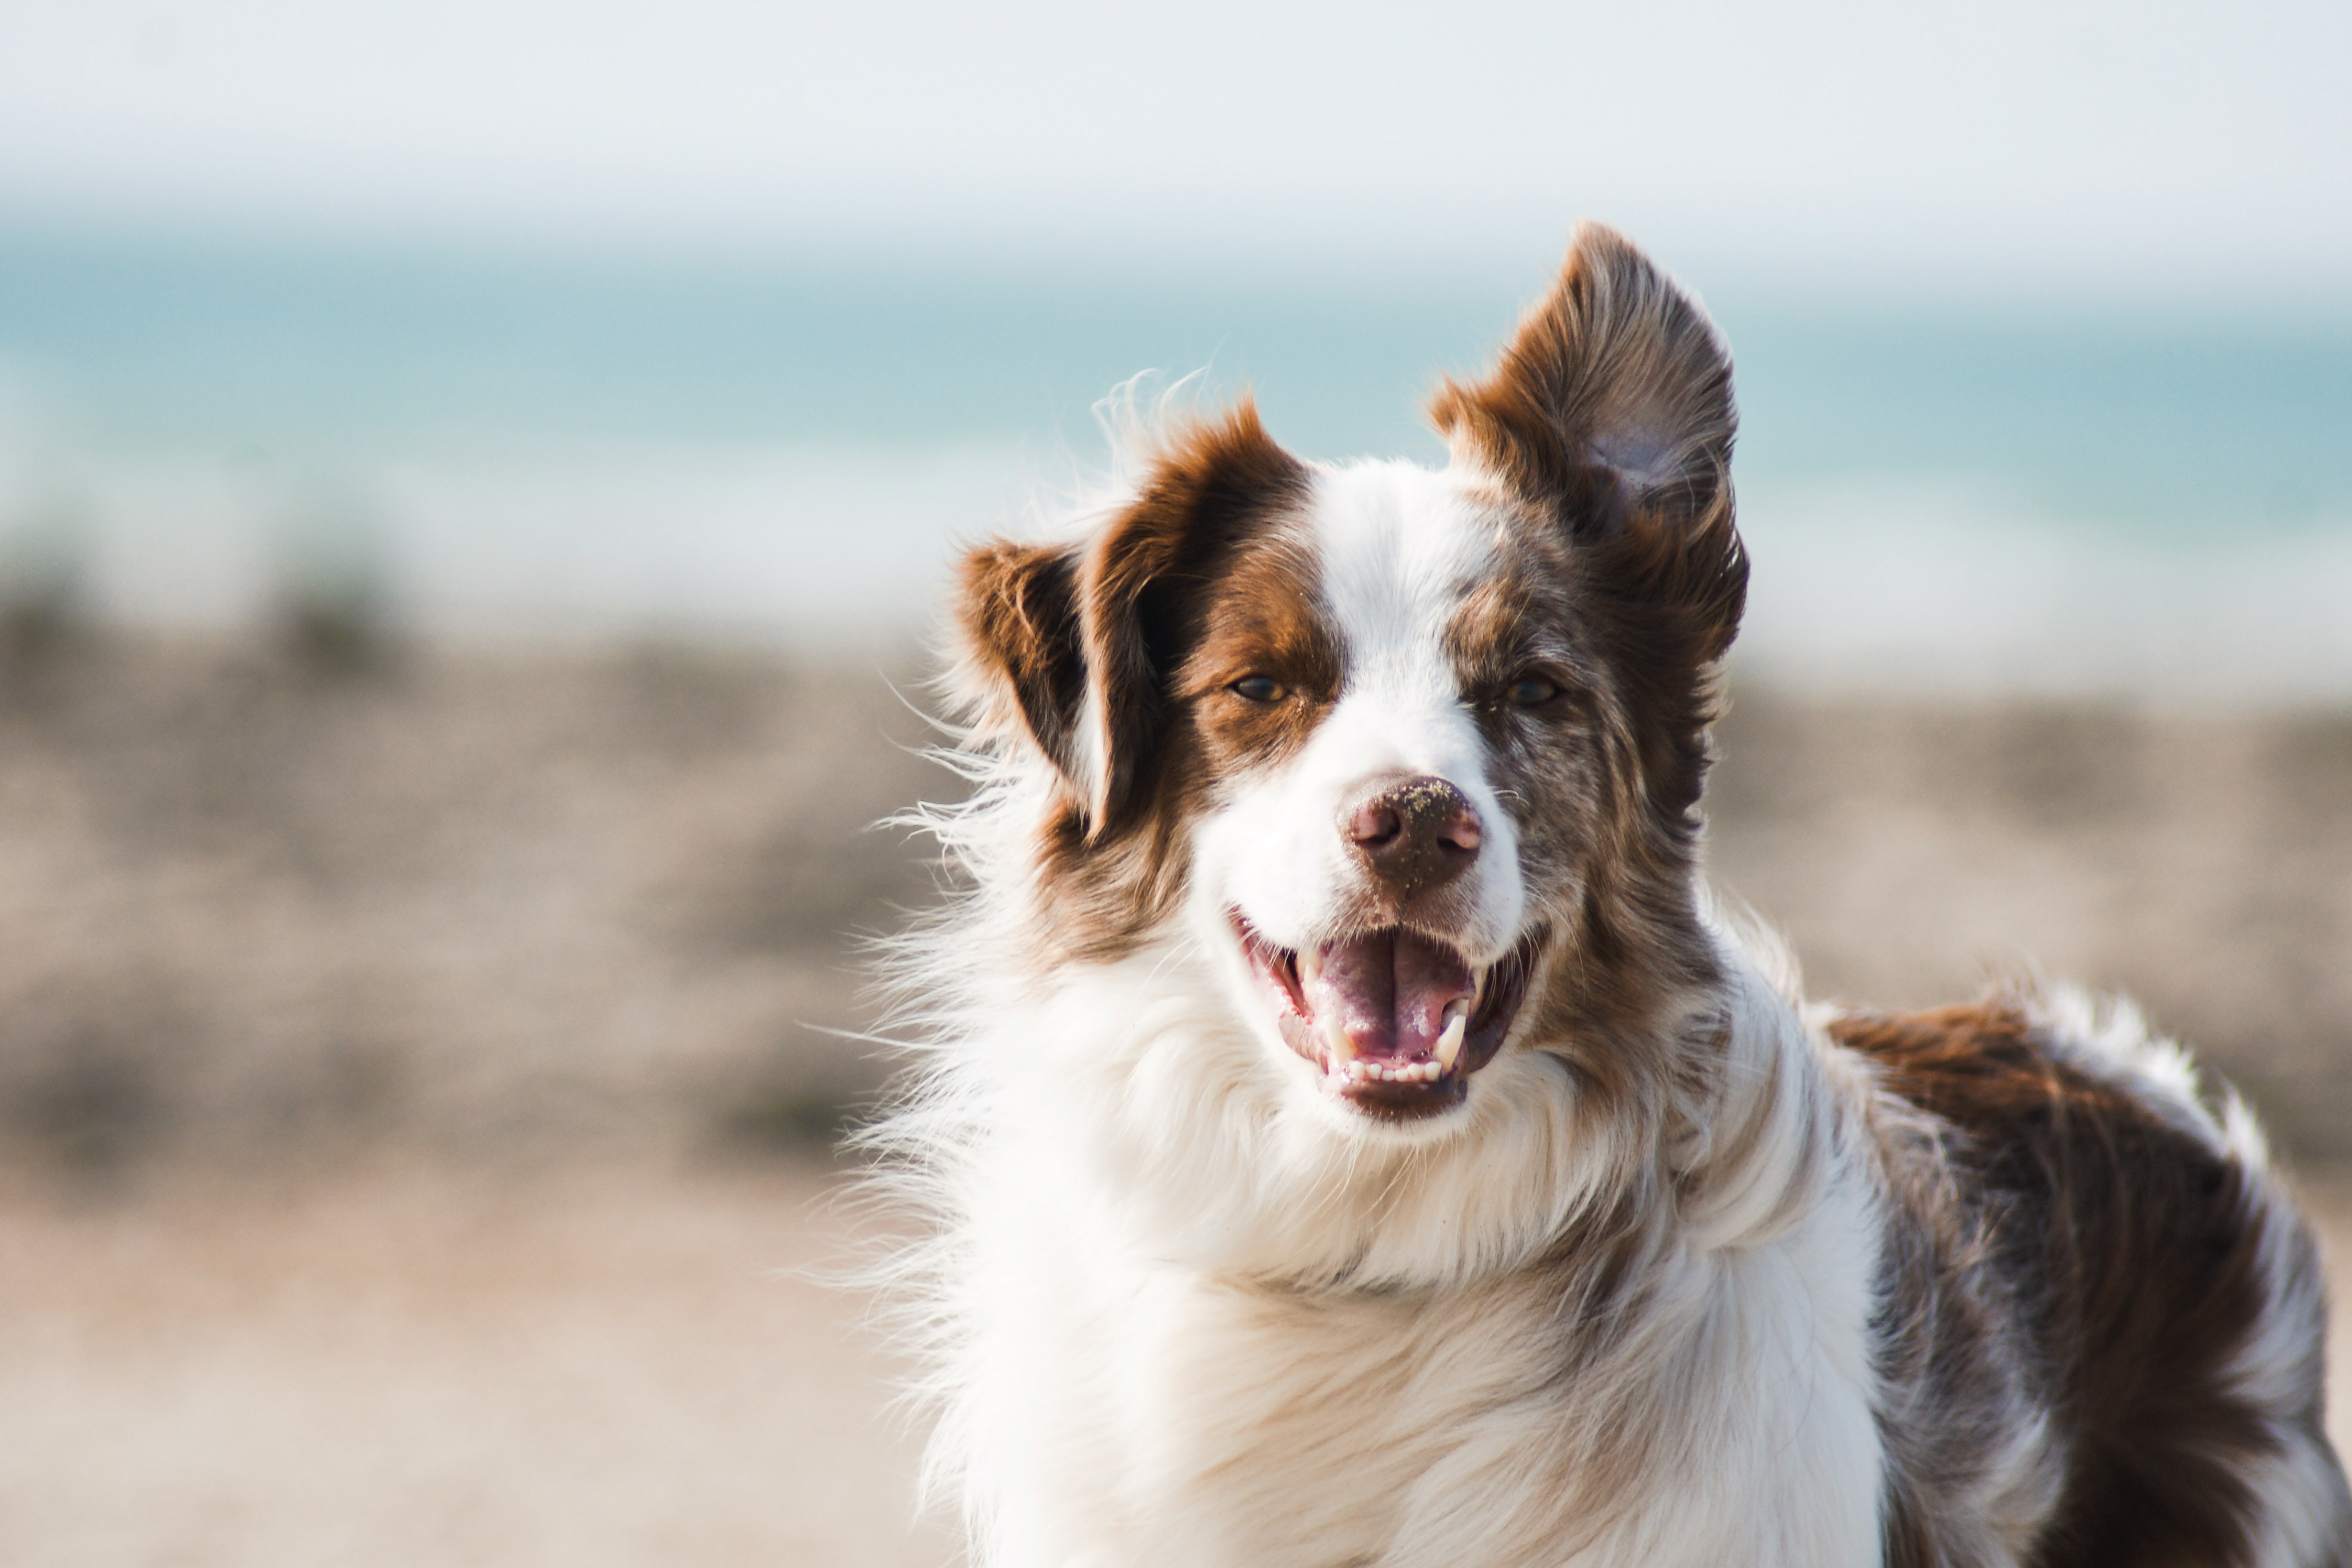 A brown and white collie-type dog looking directly at the camera.